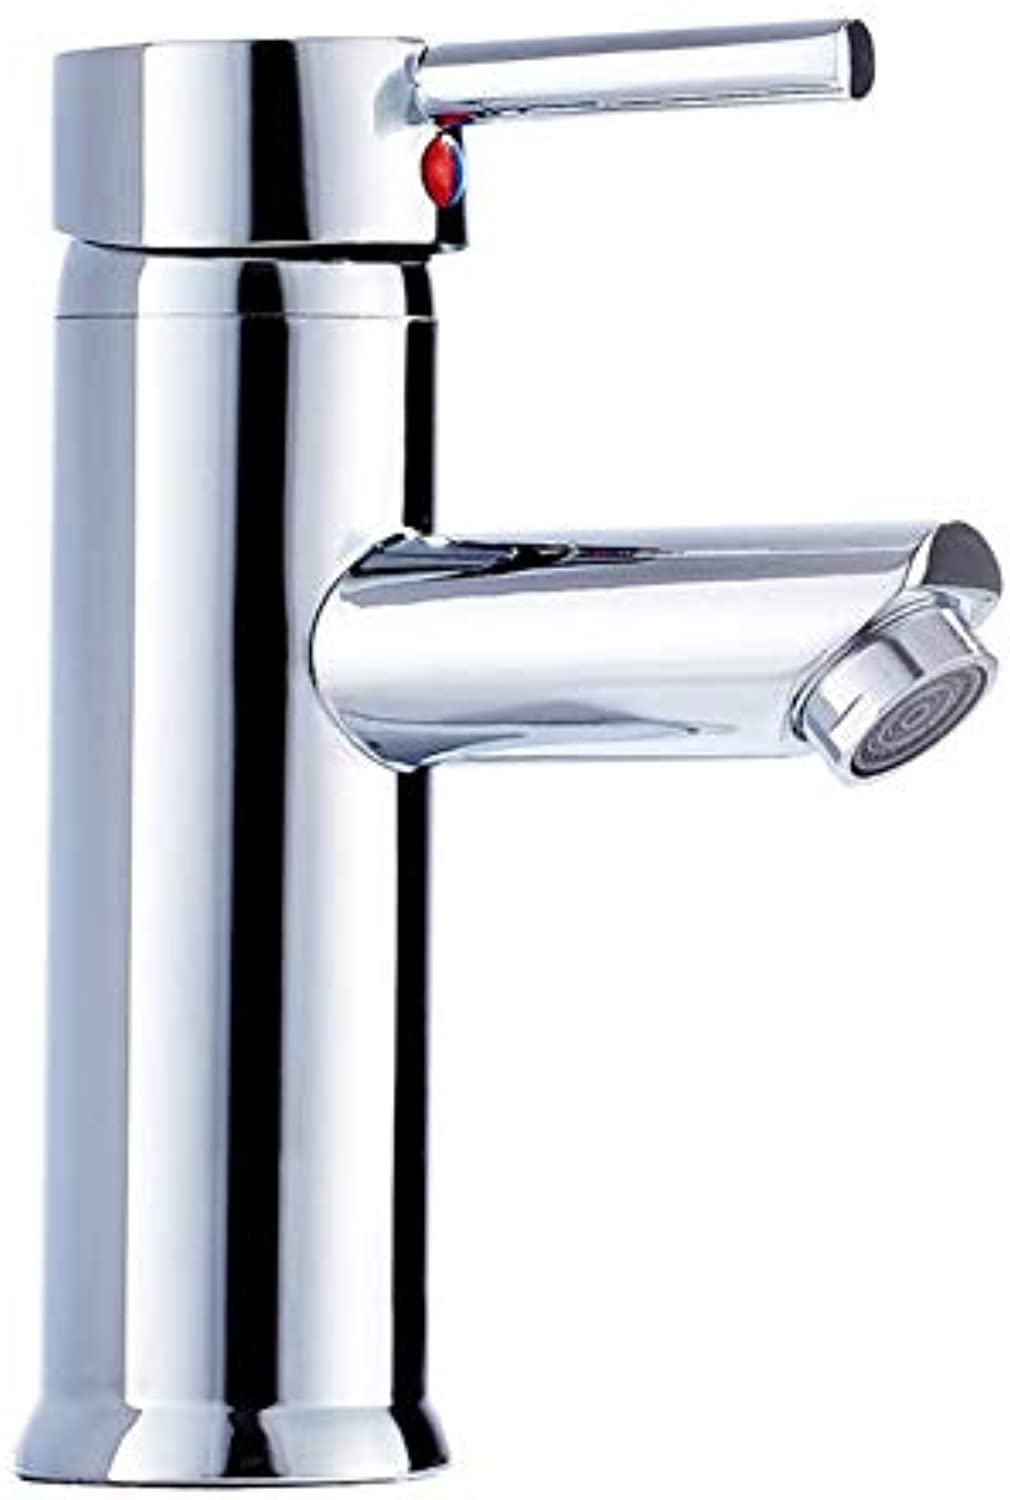 Bathroom Faucet Kitchen Bathroom Basin Sink Water Faucet Single Handle Hot Cold Water Mix Faucets Wash Basin Tap